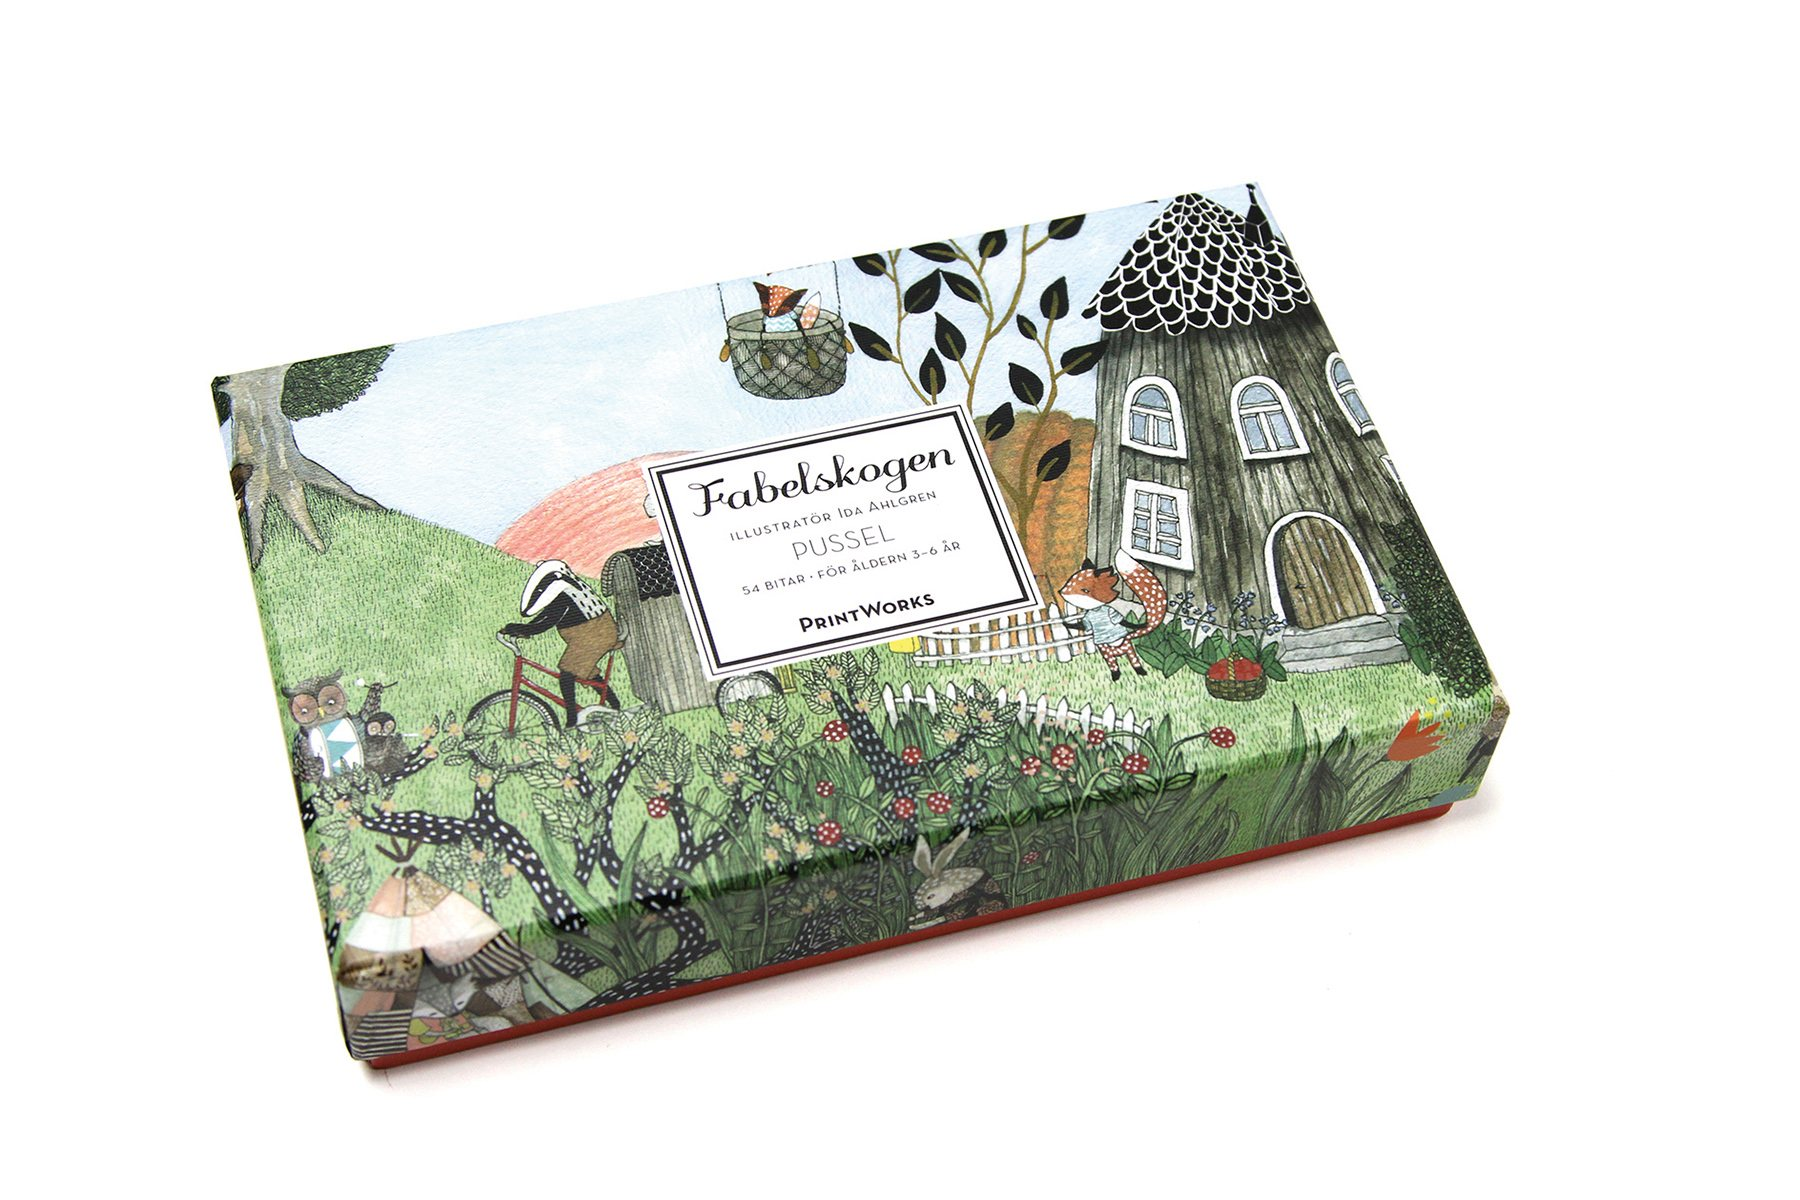 Puzzle Spiel On-Pack Co-Pack Druck Print Verpackung Schachtel Karton Packaging Box Starlite Veredelung Finish UV-Lack Colour 4c